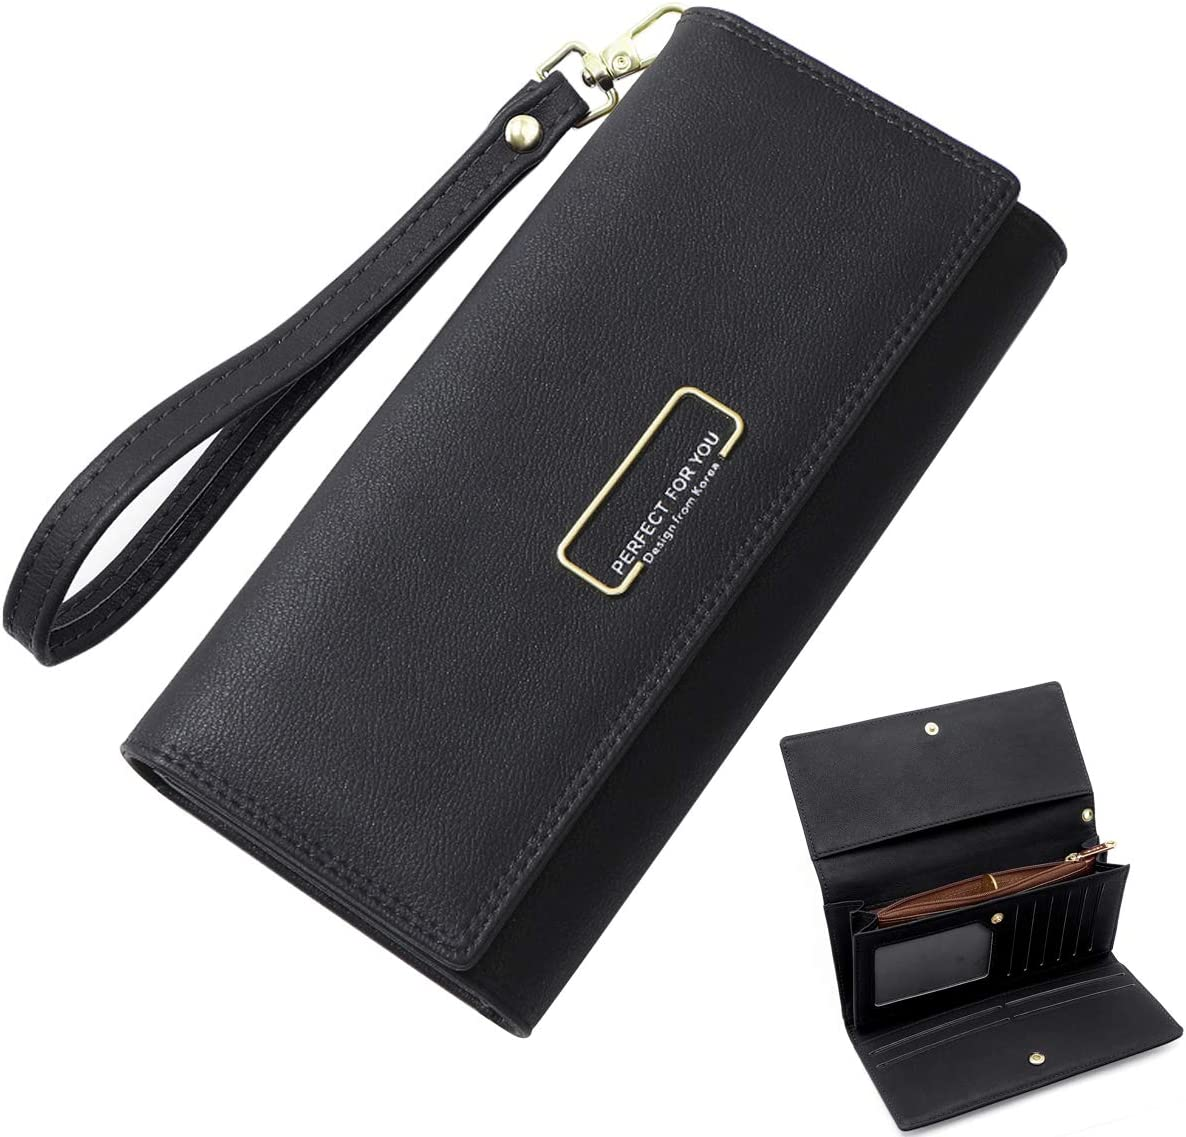 Leather Lady Long Wallets Purses with Zipper Pocket and Wrist Straps Black HNOOM Ladies Purse Large Capacity Womens Wallet with 10 Credit Card Slots